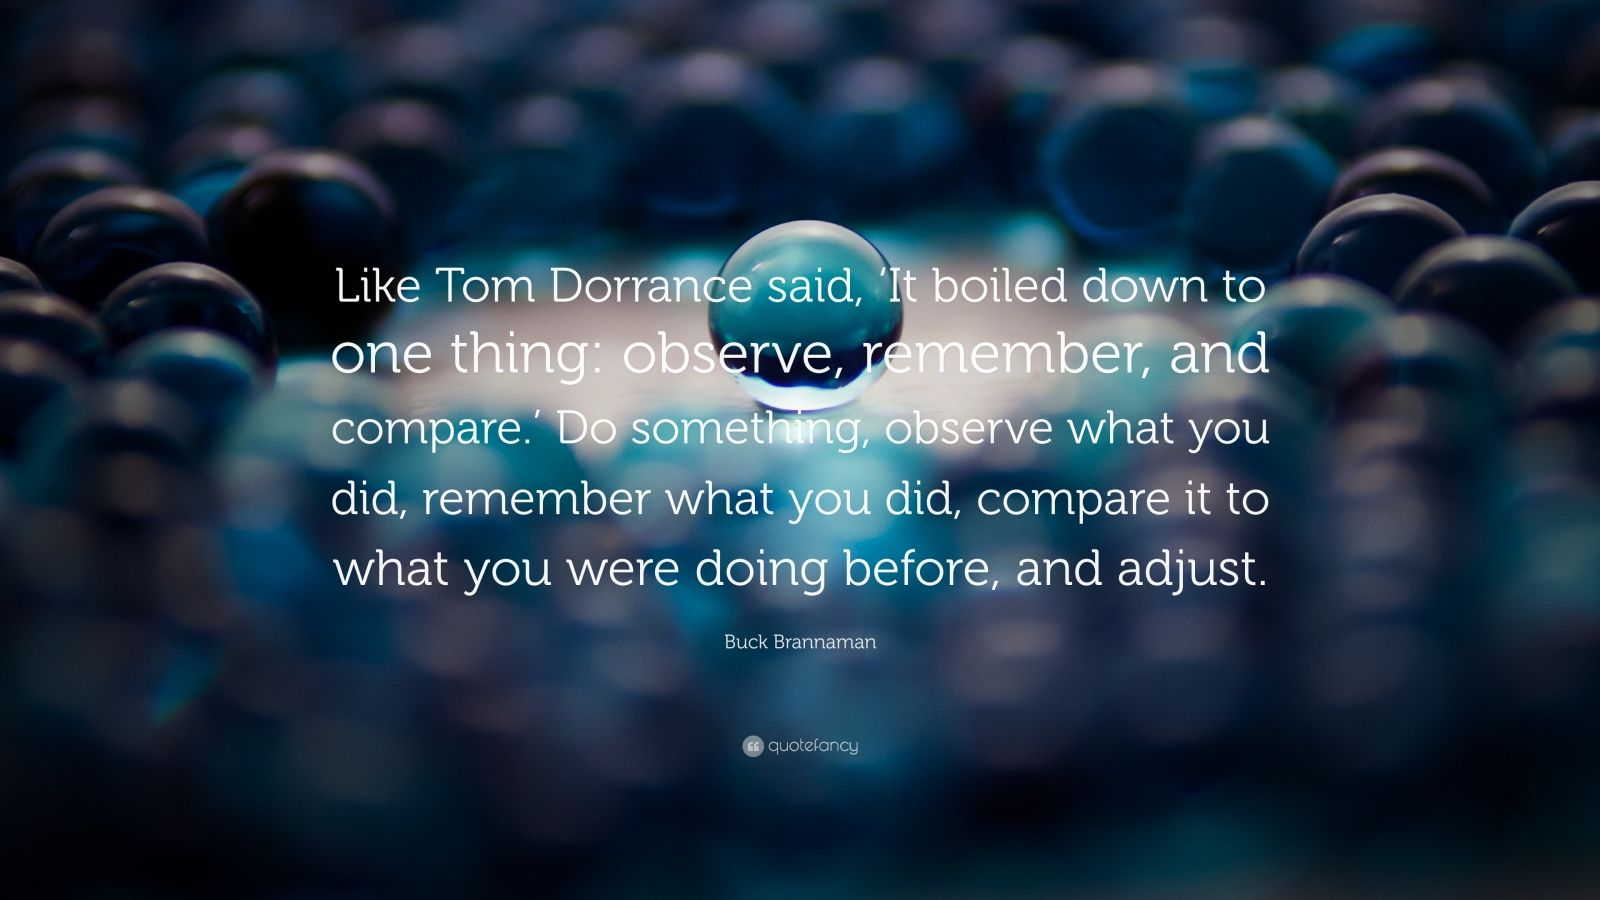 "Buck Brannaman Quote: ""Like Tom Dorrance said, 'It boiled down to one thing: observe, remember, and compare.' Do something, observe what you did, remember what you did, compare it to what you were doing before, and adjust."""